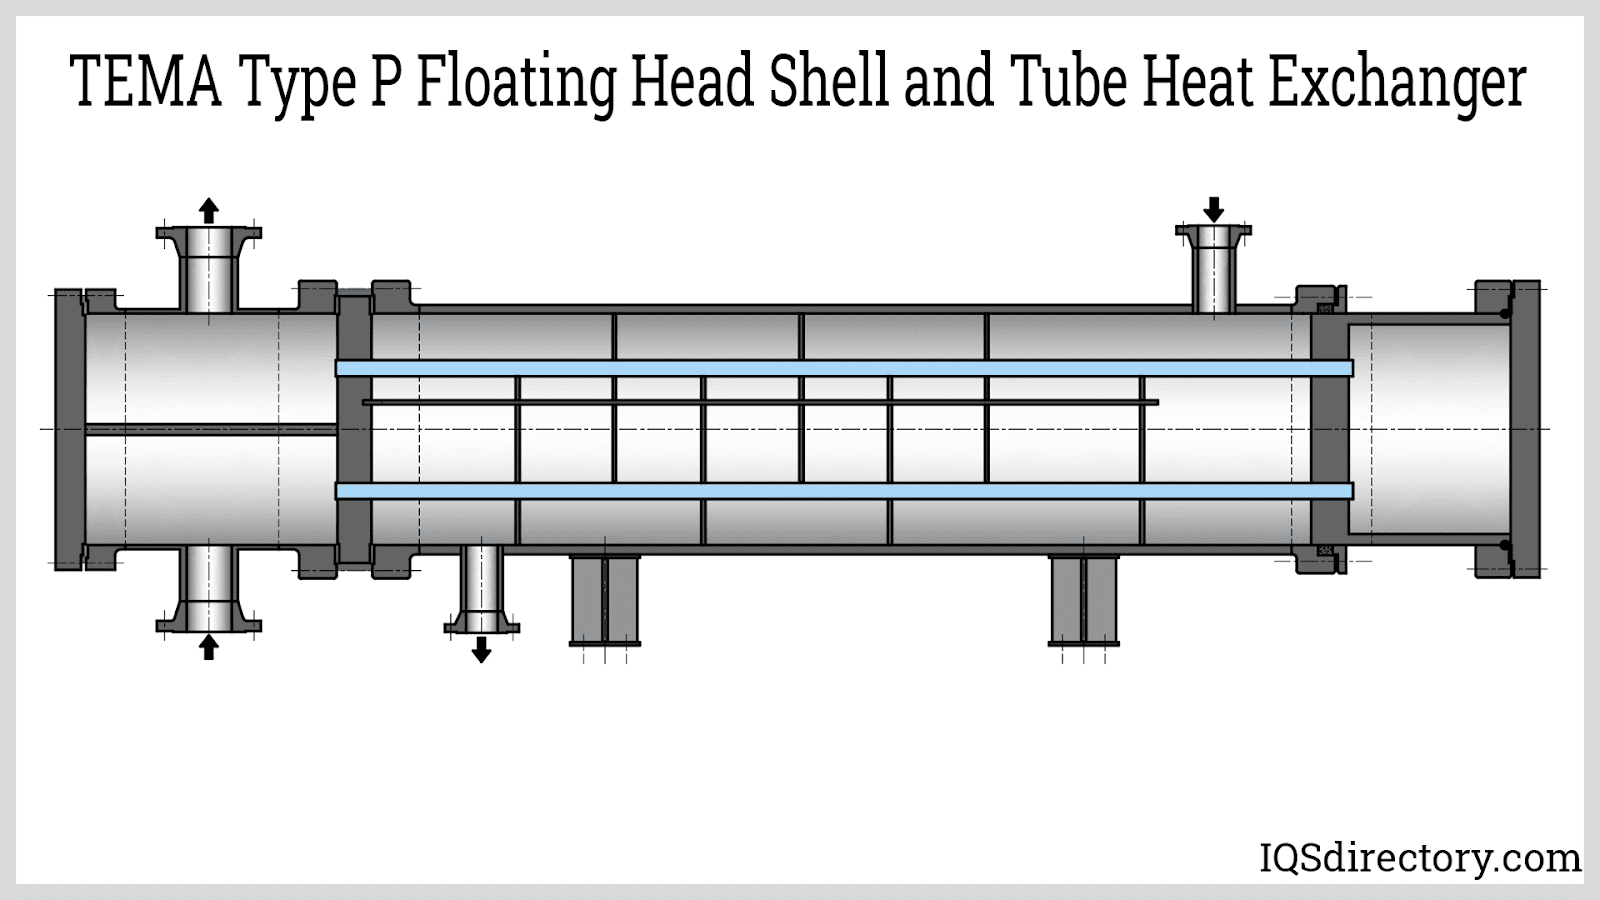 TEMA Type P Floating Head Shell and Tube Heat Exchanger